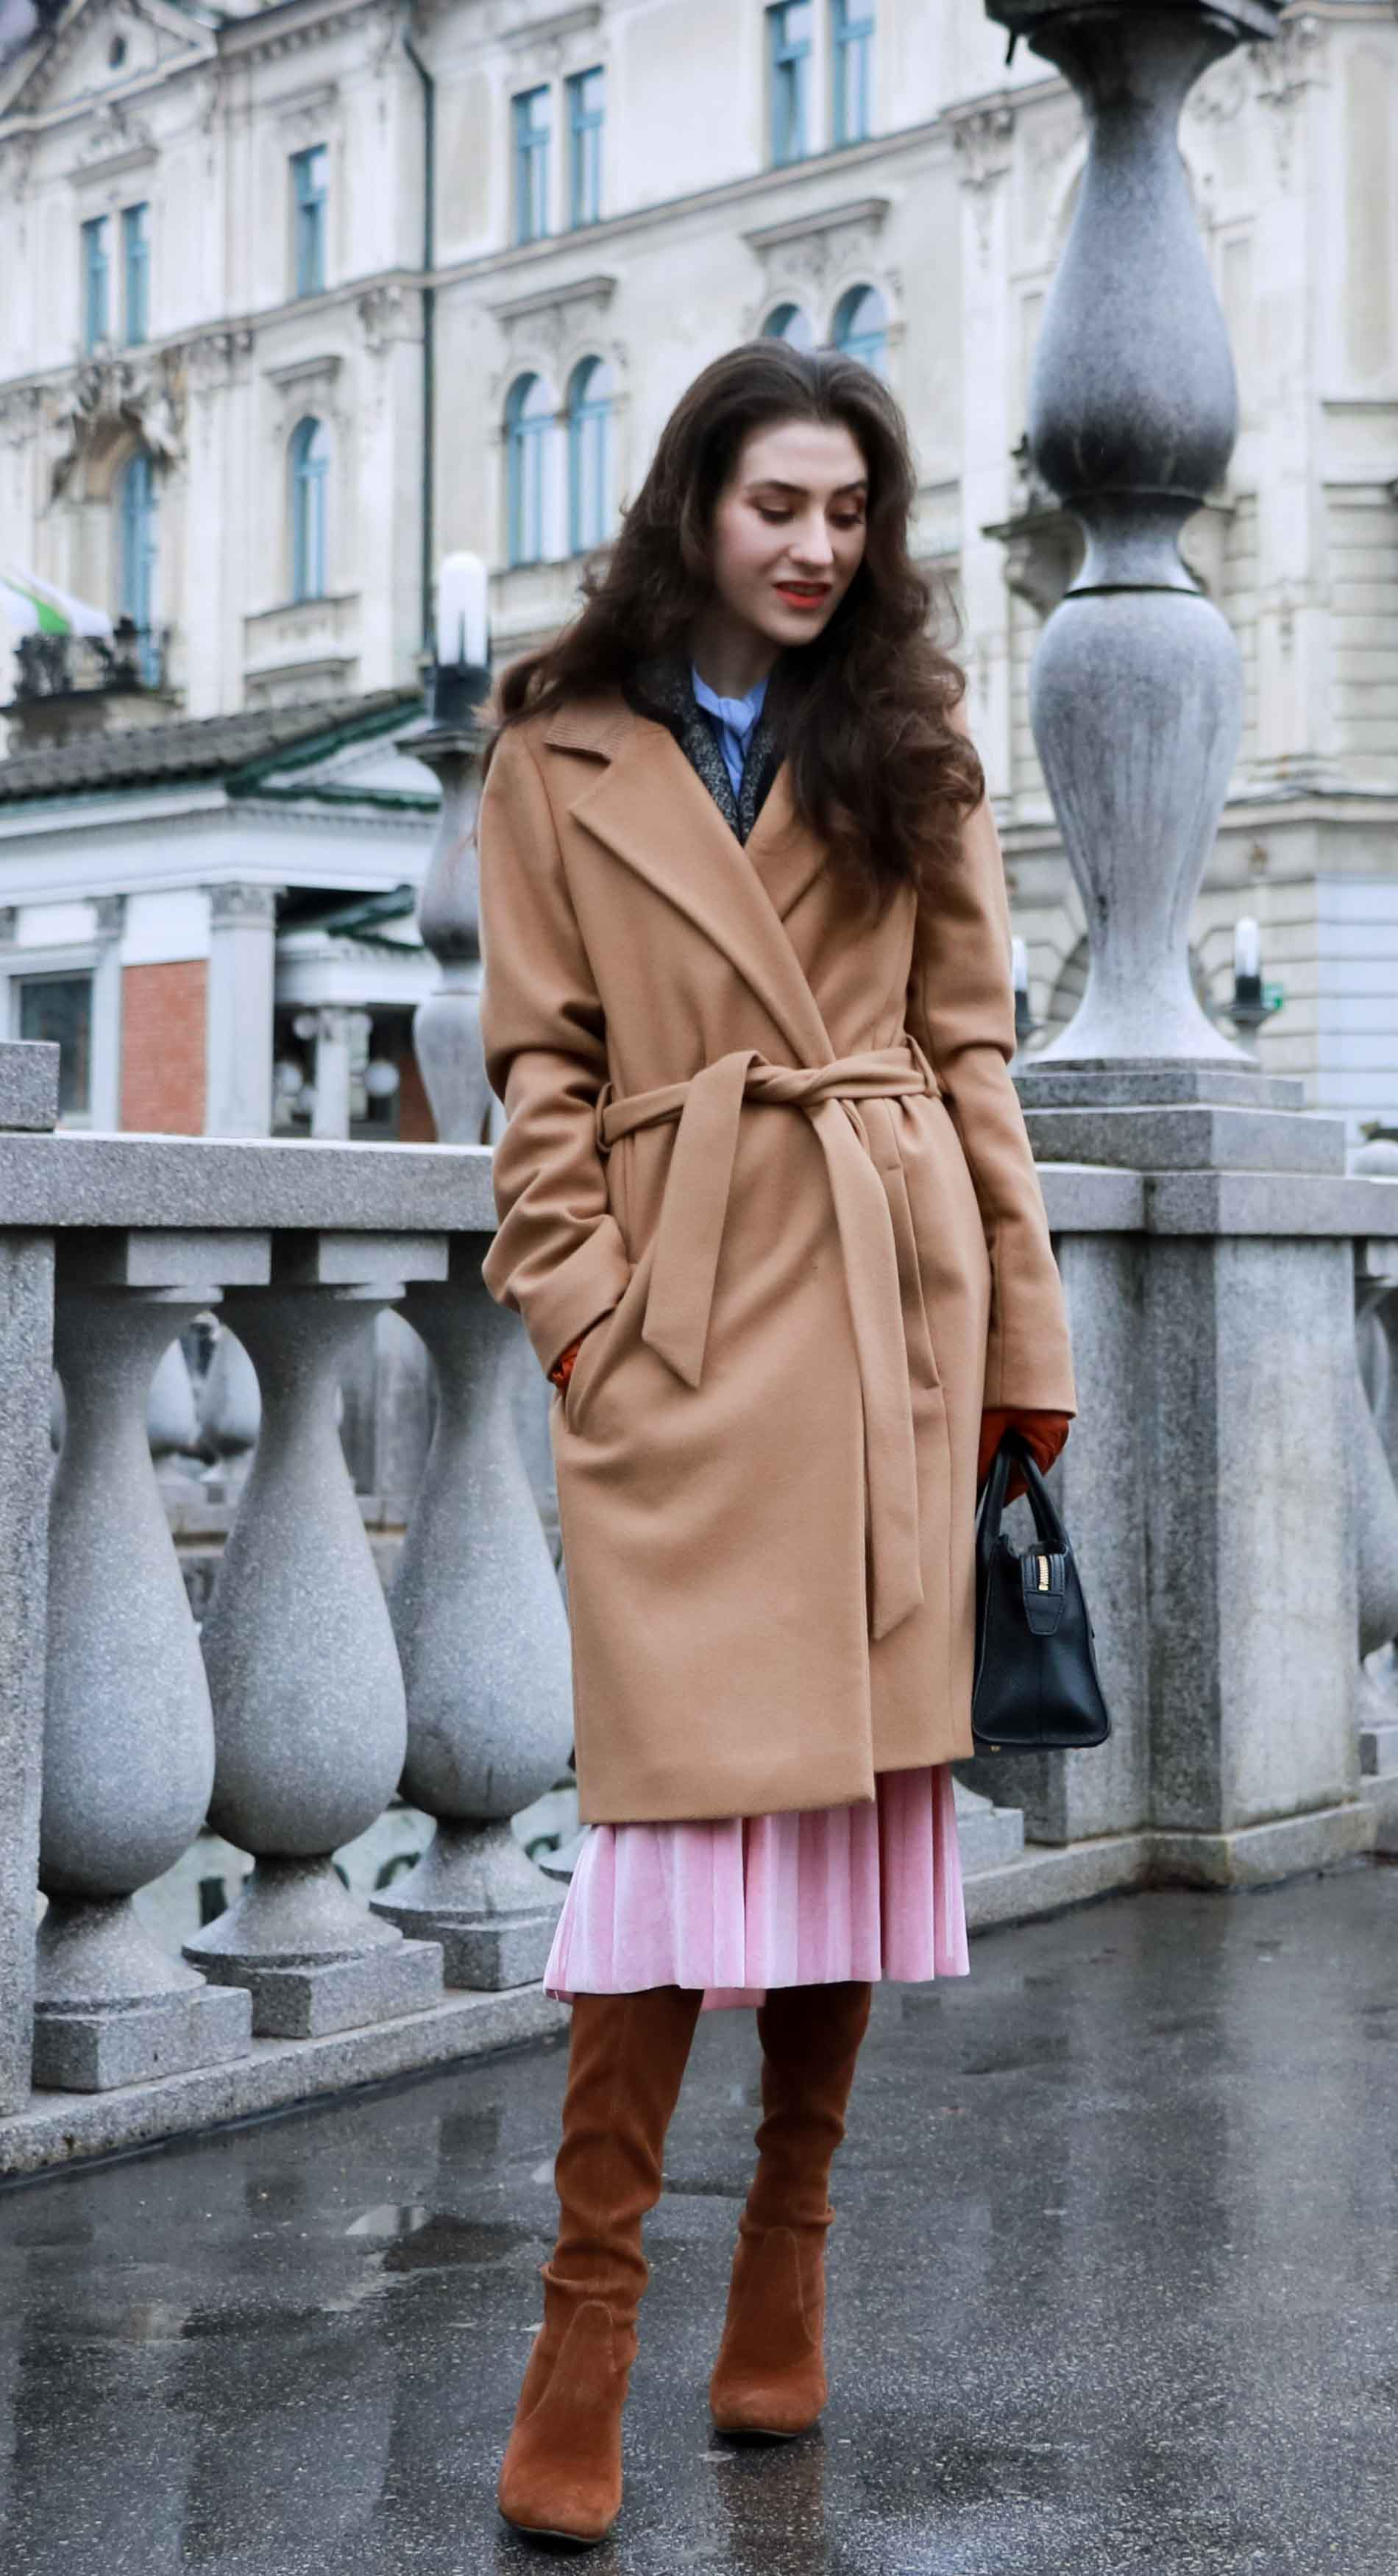 Fashion Blogger Veronika Lipar of Brunette from Wall Street wearing elegant outfit, ESCADA wrap camel coat, pink velvet midi pleated skirt, brown Stuart Weitzman Highland OTK boots, black top handle bag, leather gloves